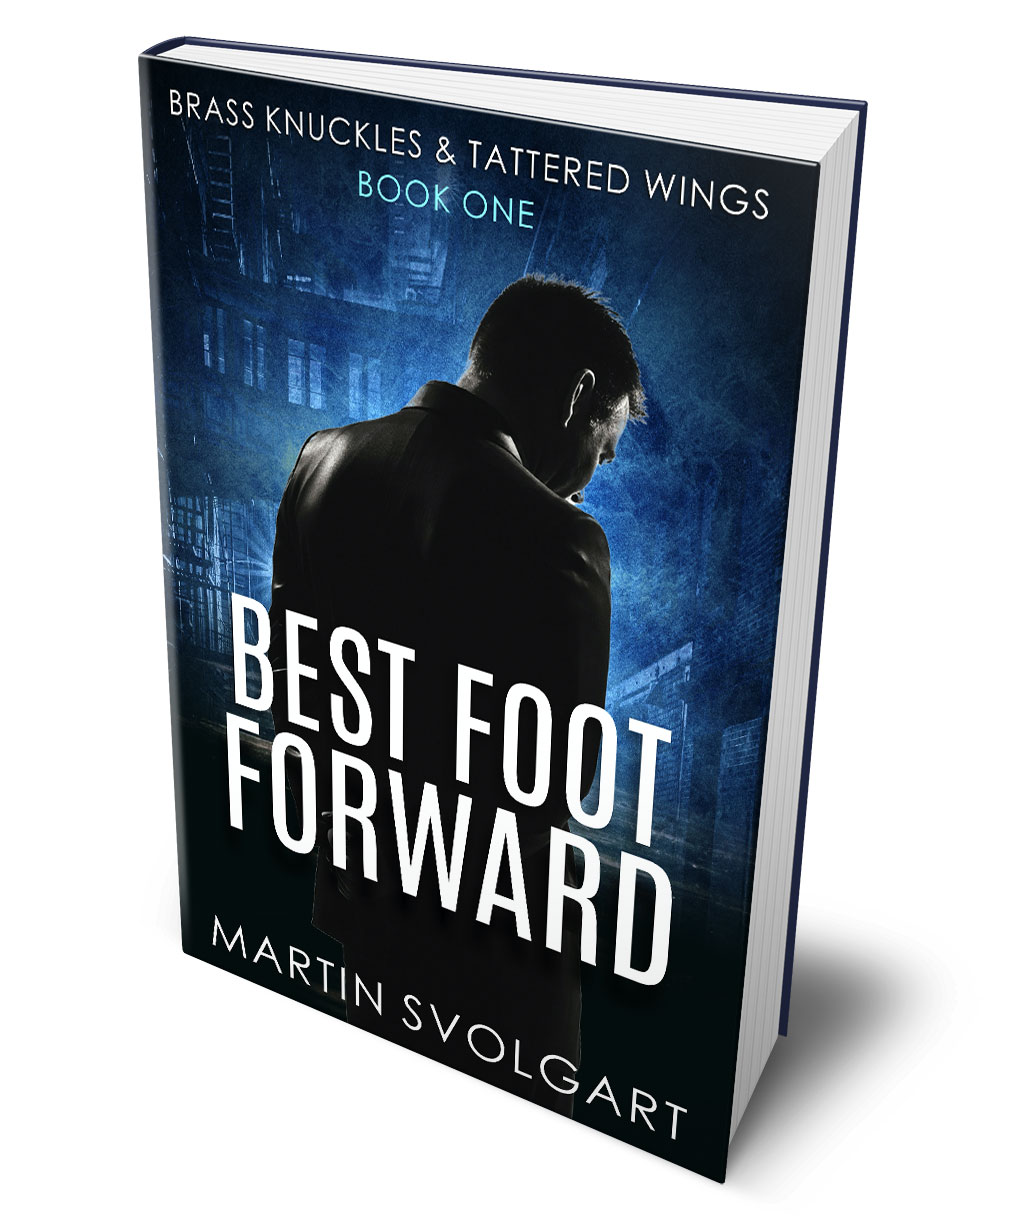 Best Foot Forward by Martin Svolgart